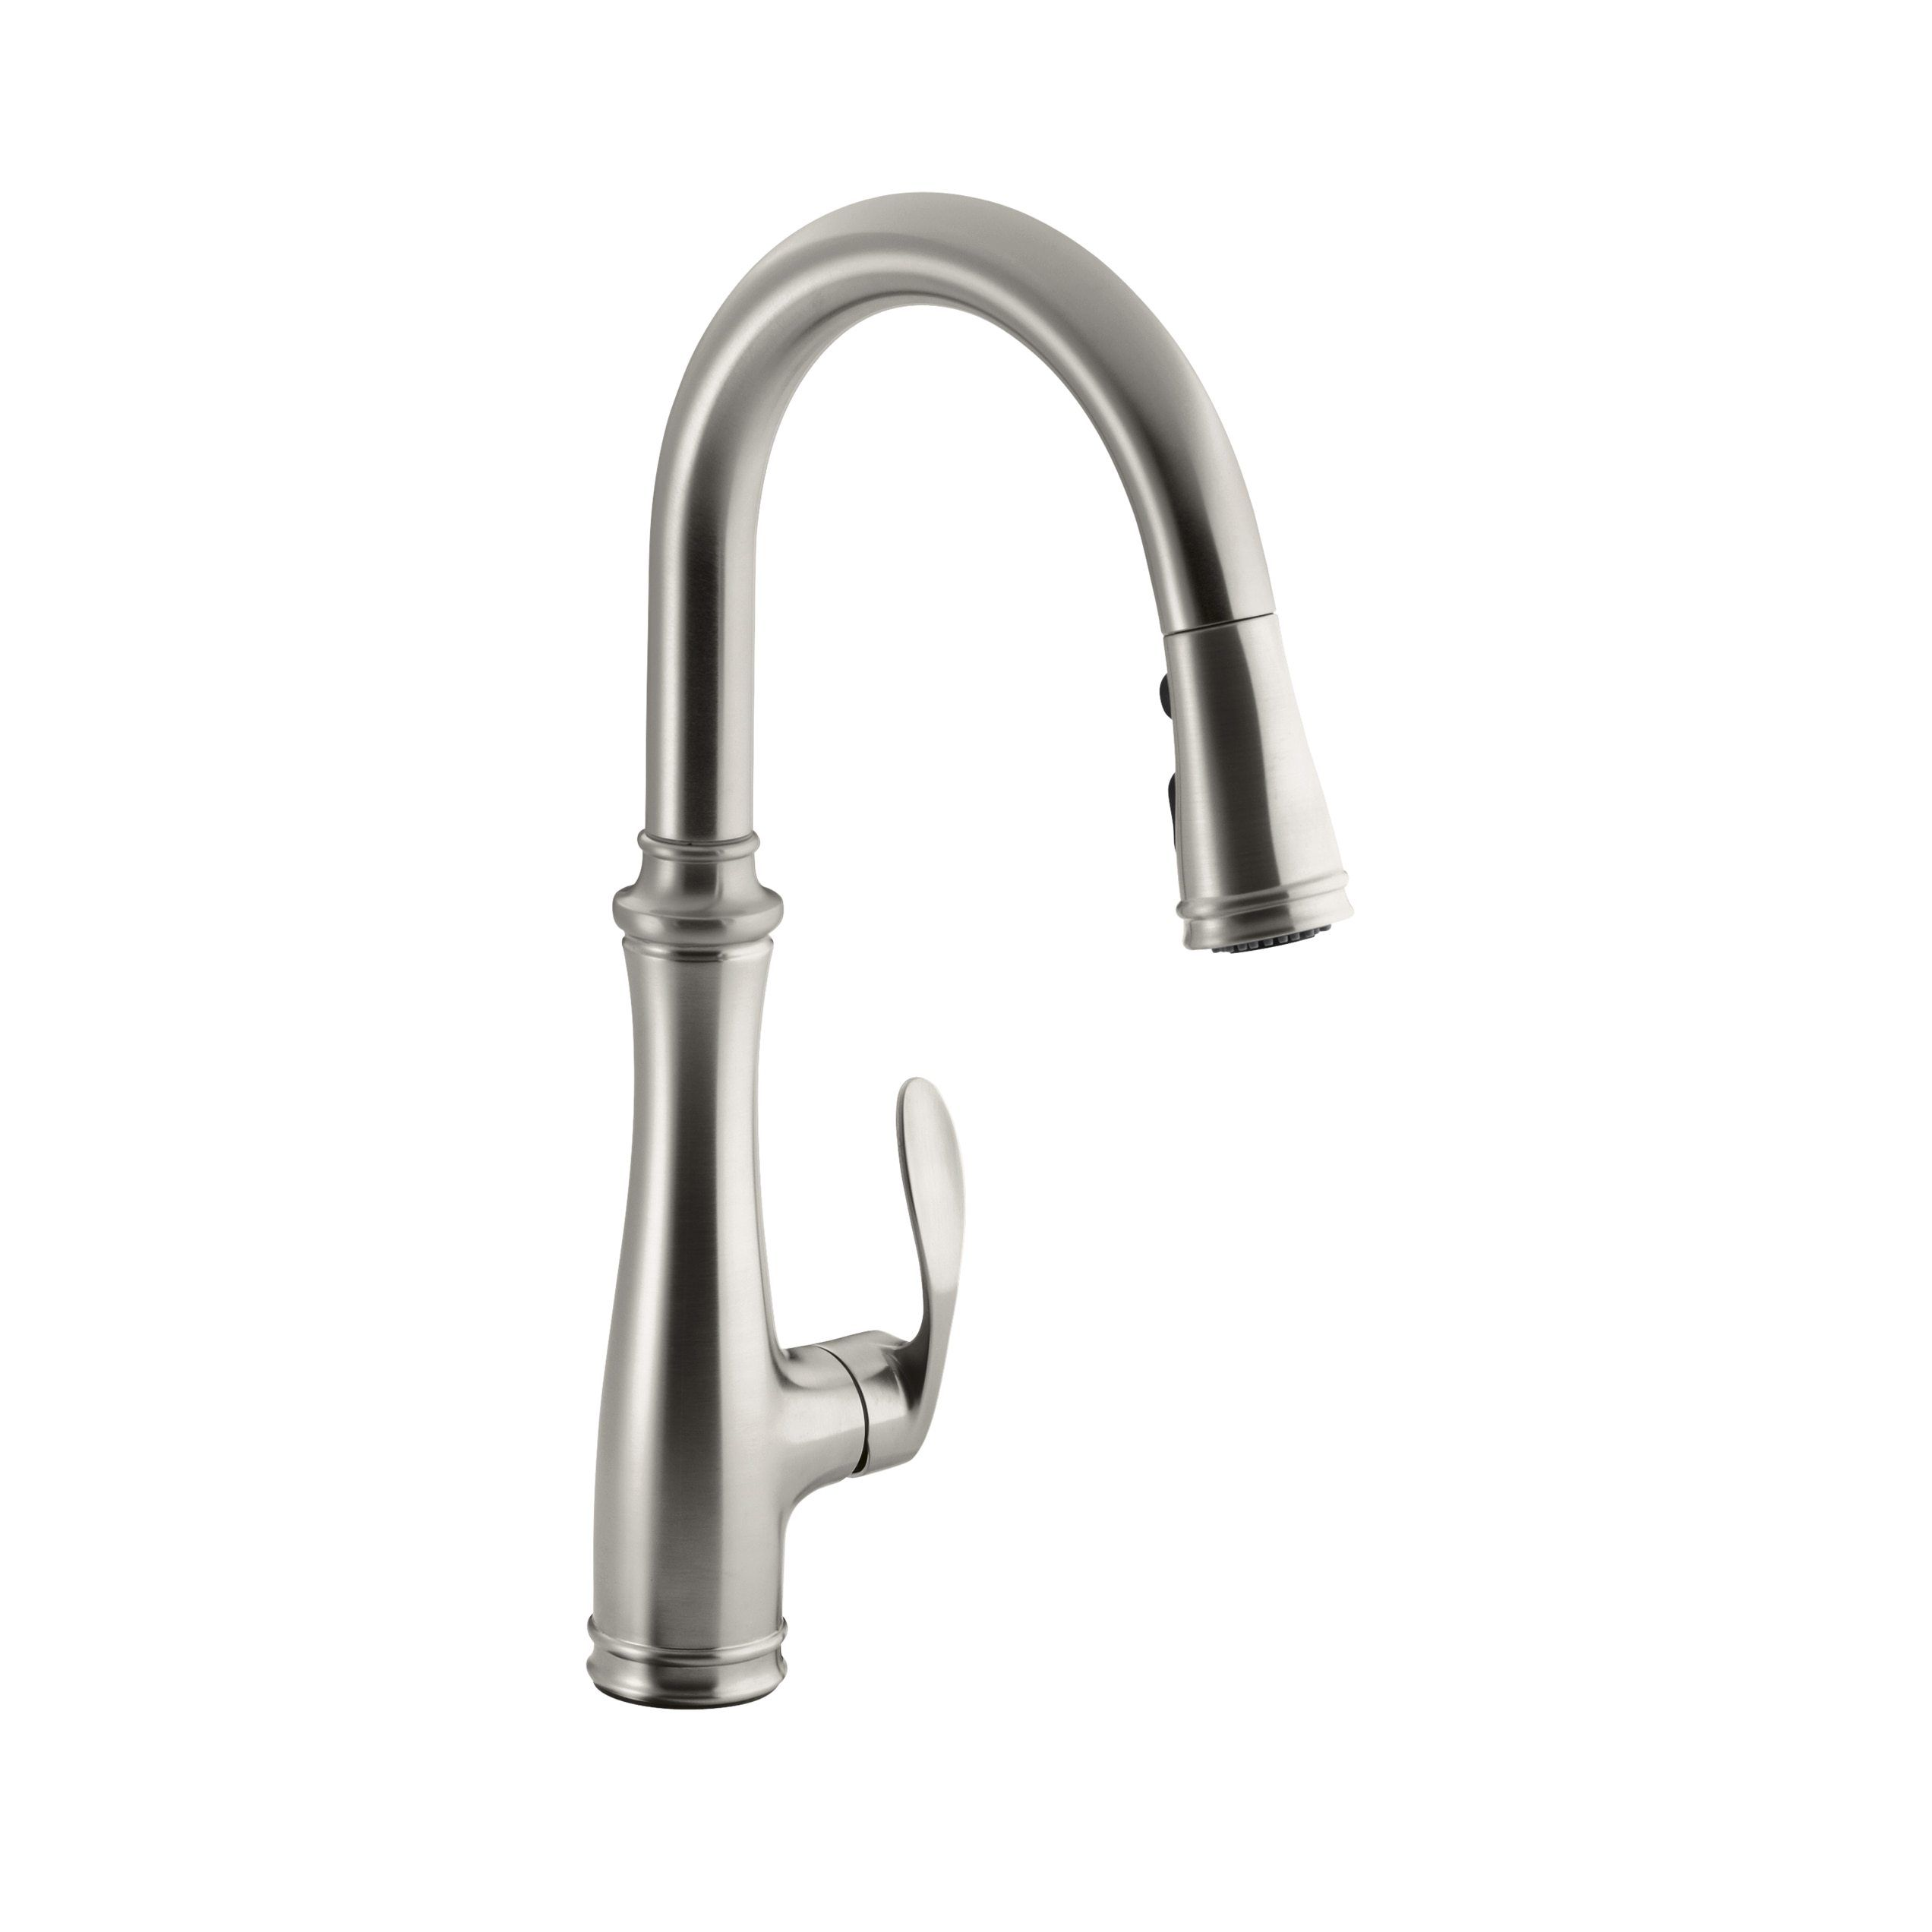 unique of repair depot htsreccom parts fresh kitchen faucet home pfister price diagram photos